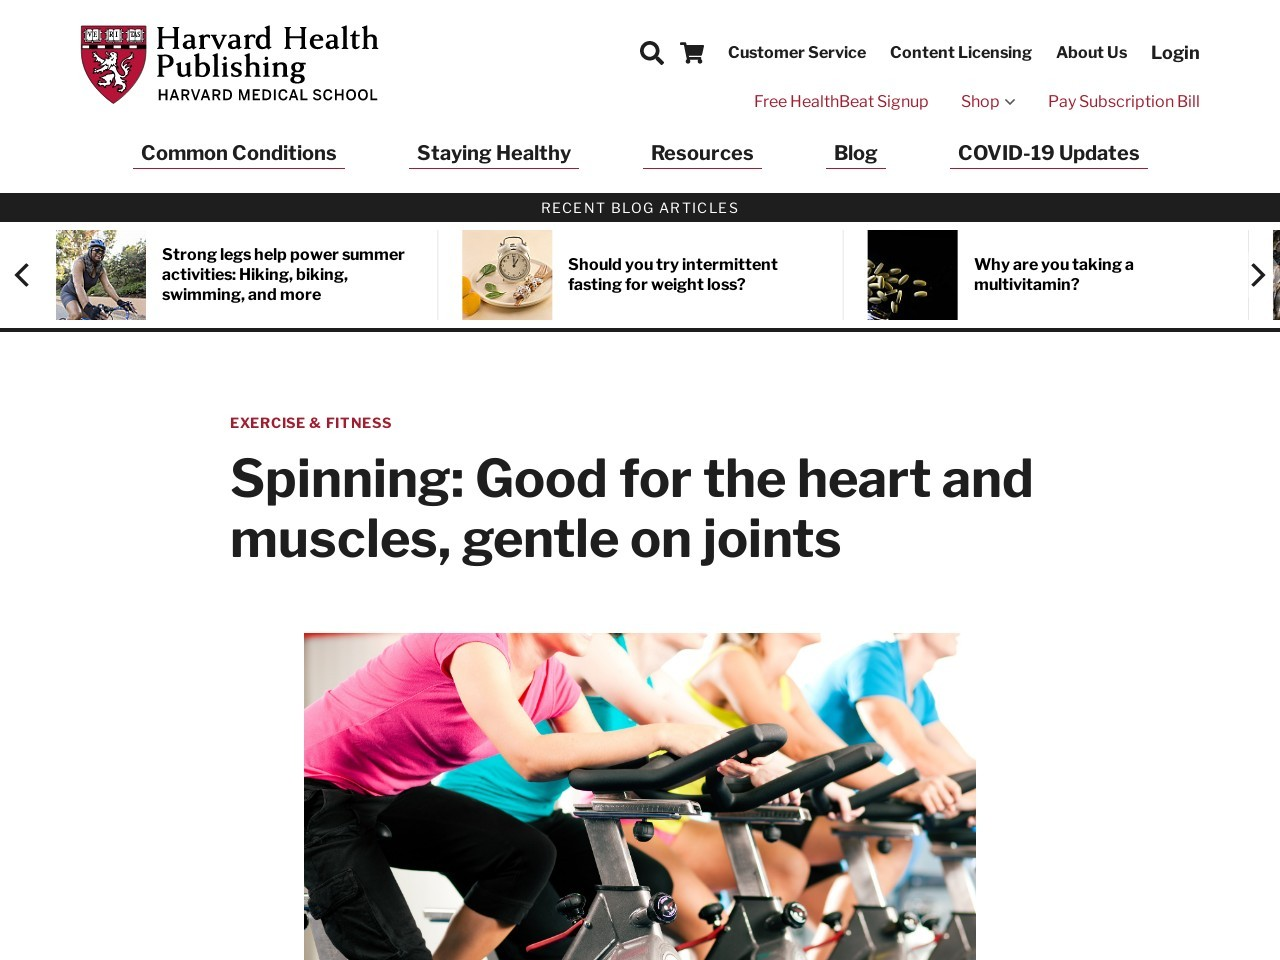 Spinning: Good for the heart and muscle tissue, gentle on joints